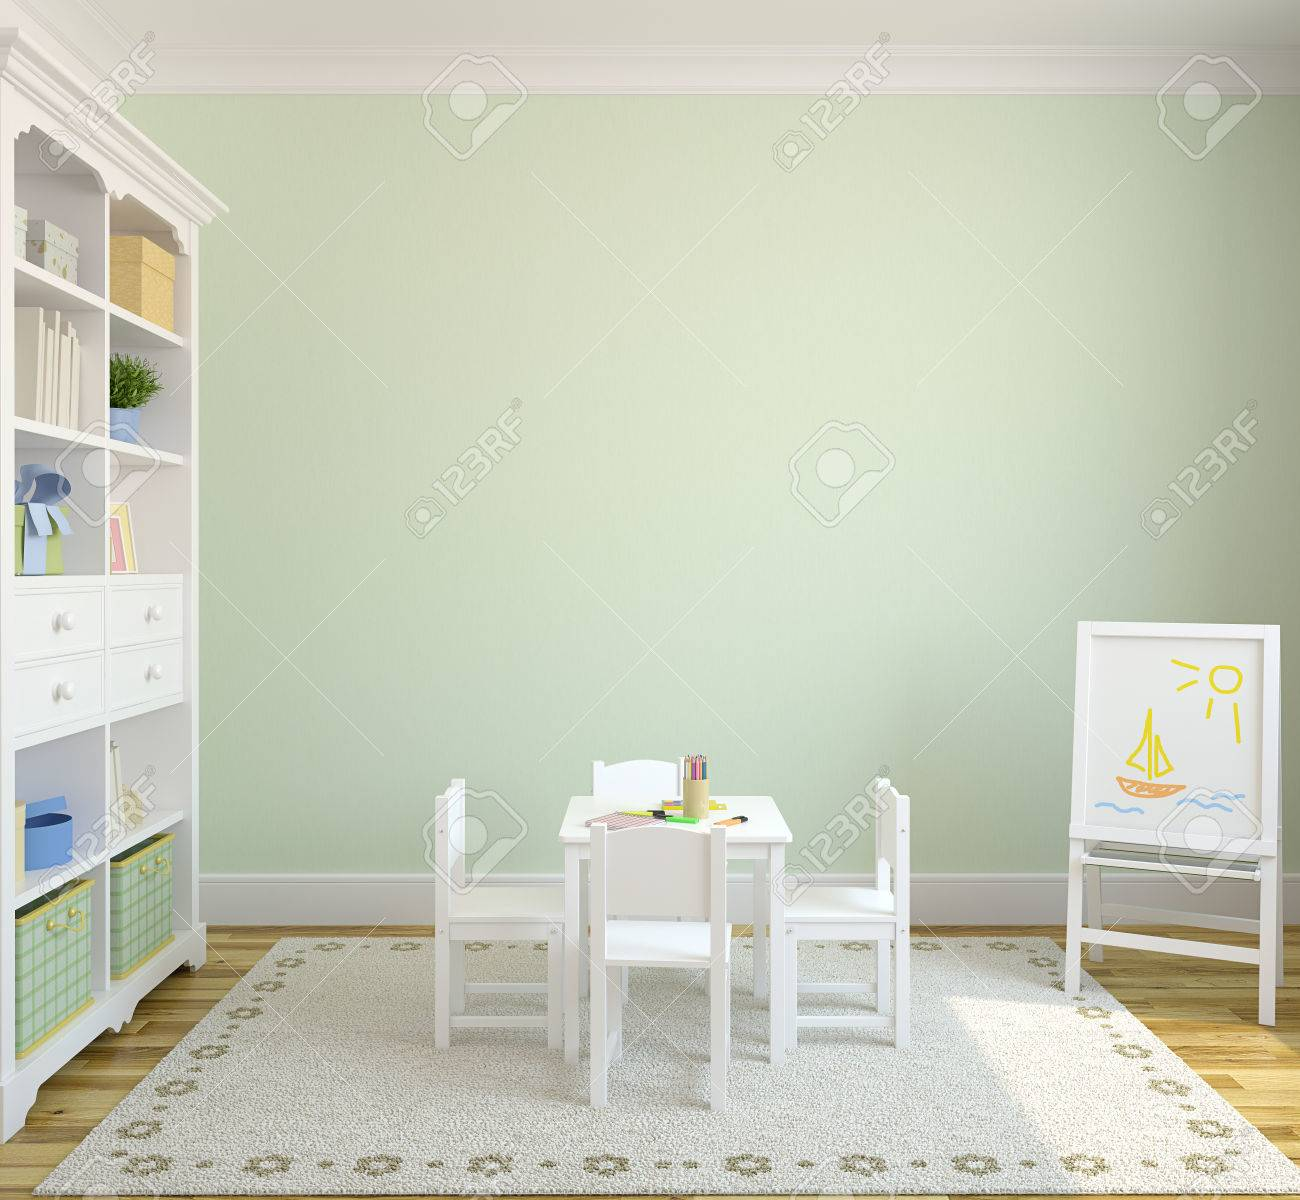 Colorful playroom interior  3d render  Pictures in frames was